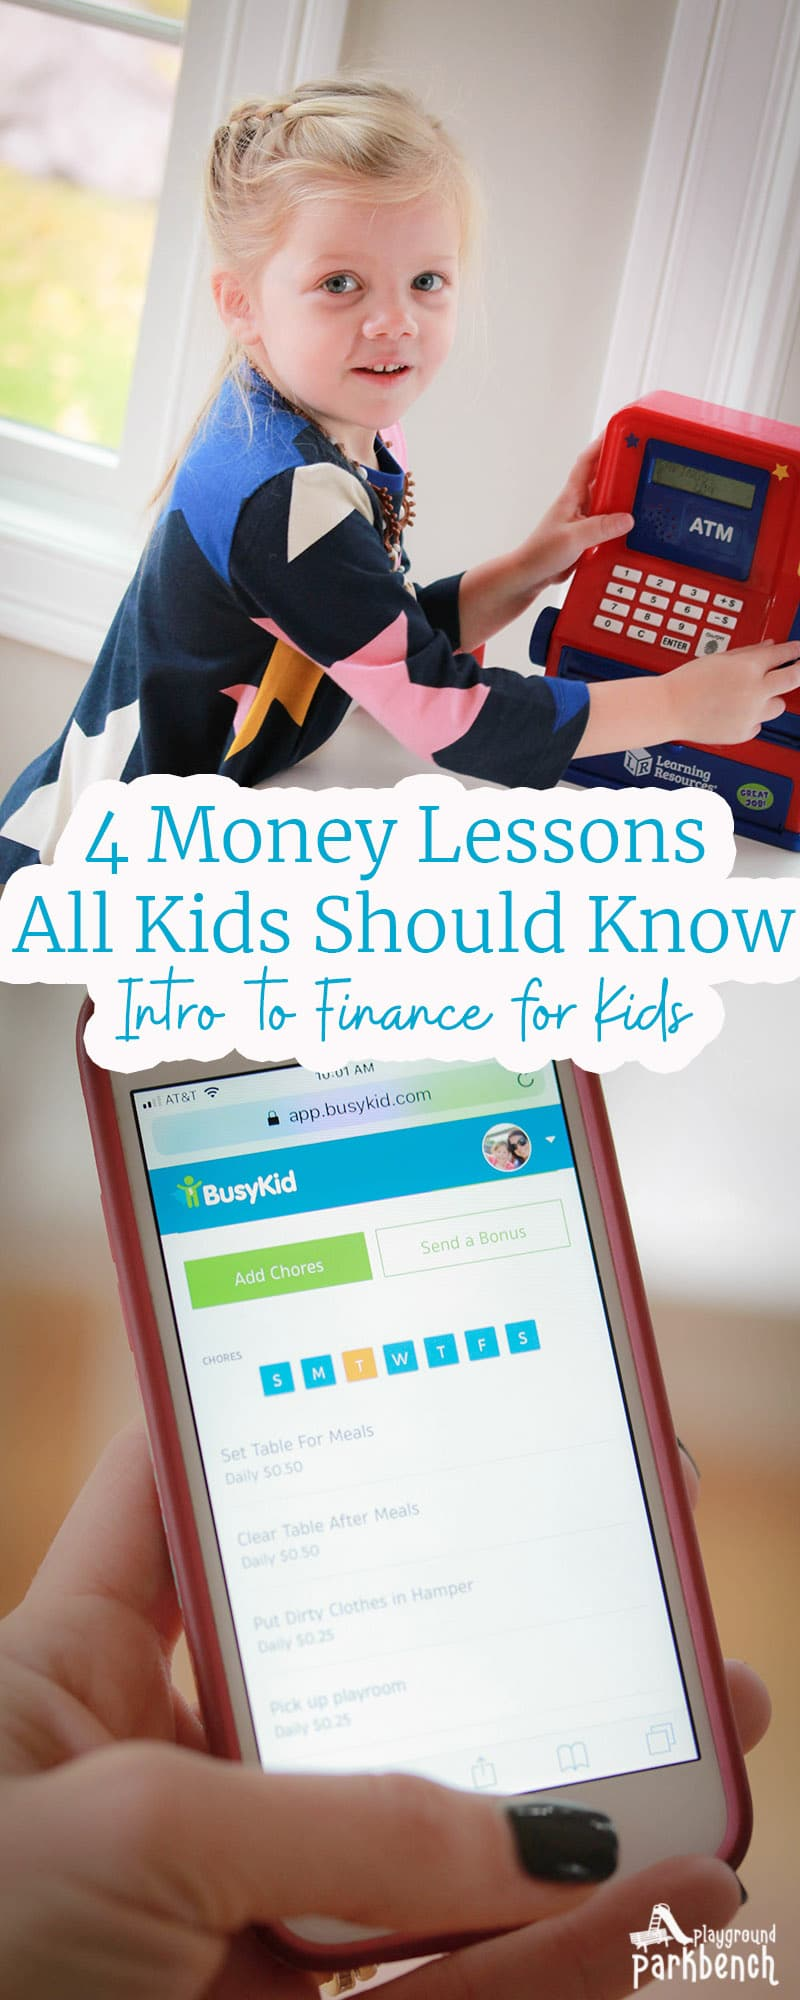 When should you start teaching your kids about money? And what should you teach them? These 4 simple money lessons are the perfect introduction to finance for kids, and you can start as soon as they are old enough to count | Family Finances | Preschool | Kindergarten | Allowances |